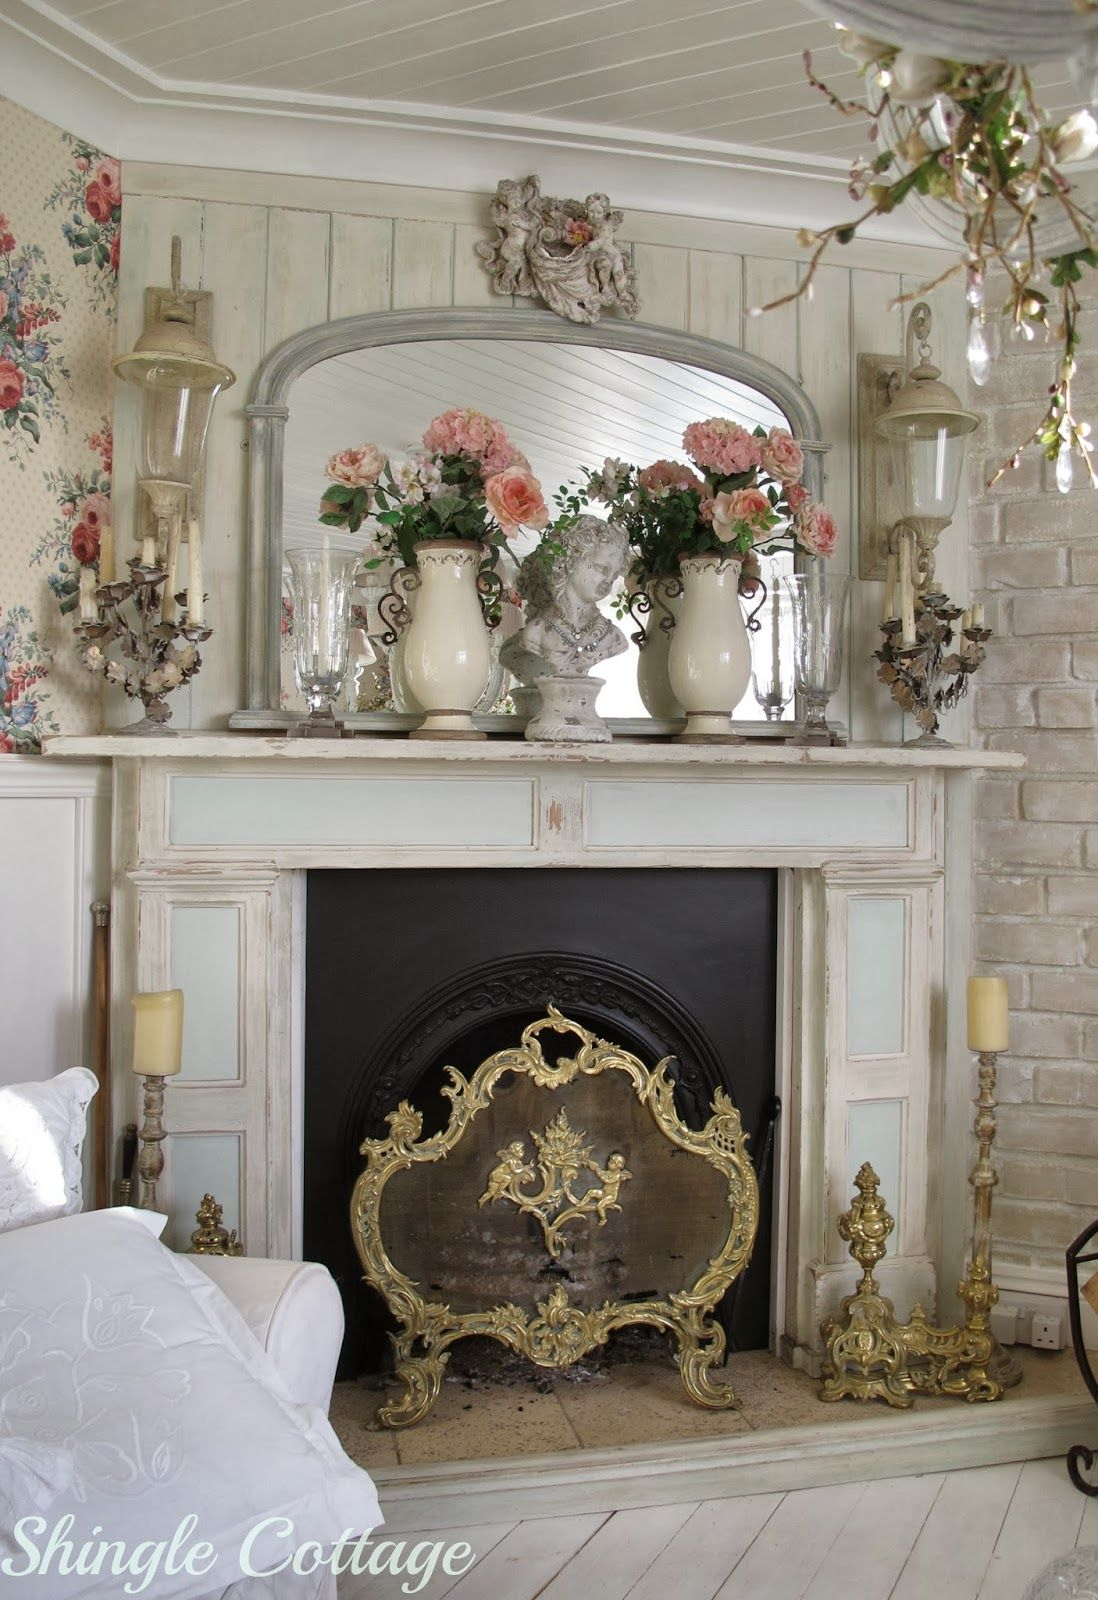 Fireplace Shabby Chic Fireplace Cottage Chic Decor Shabby Chic Bedrooms